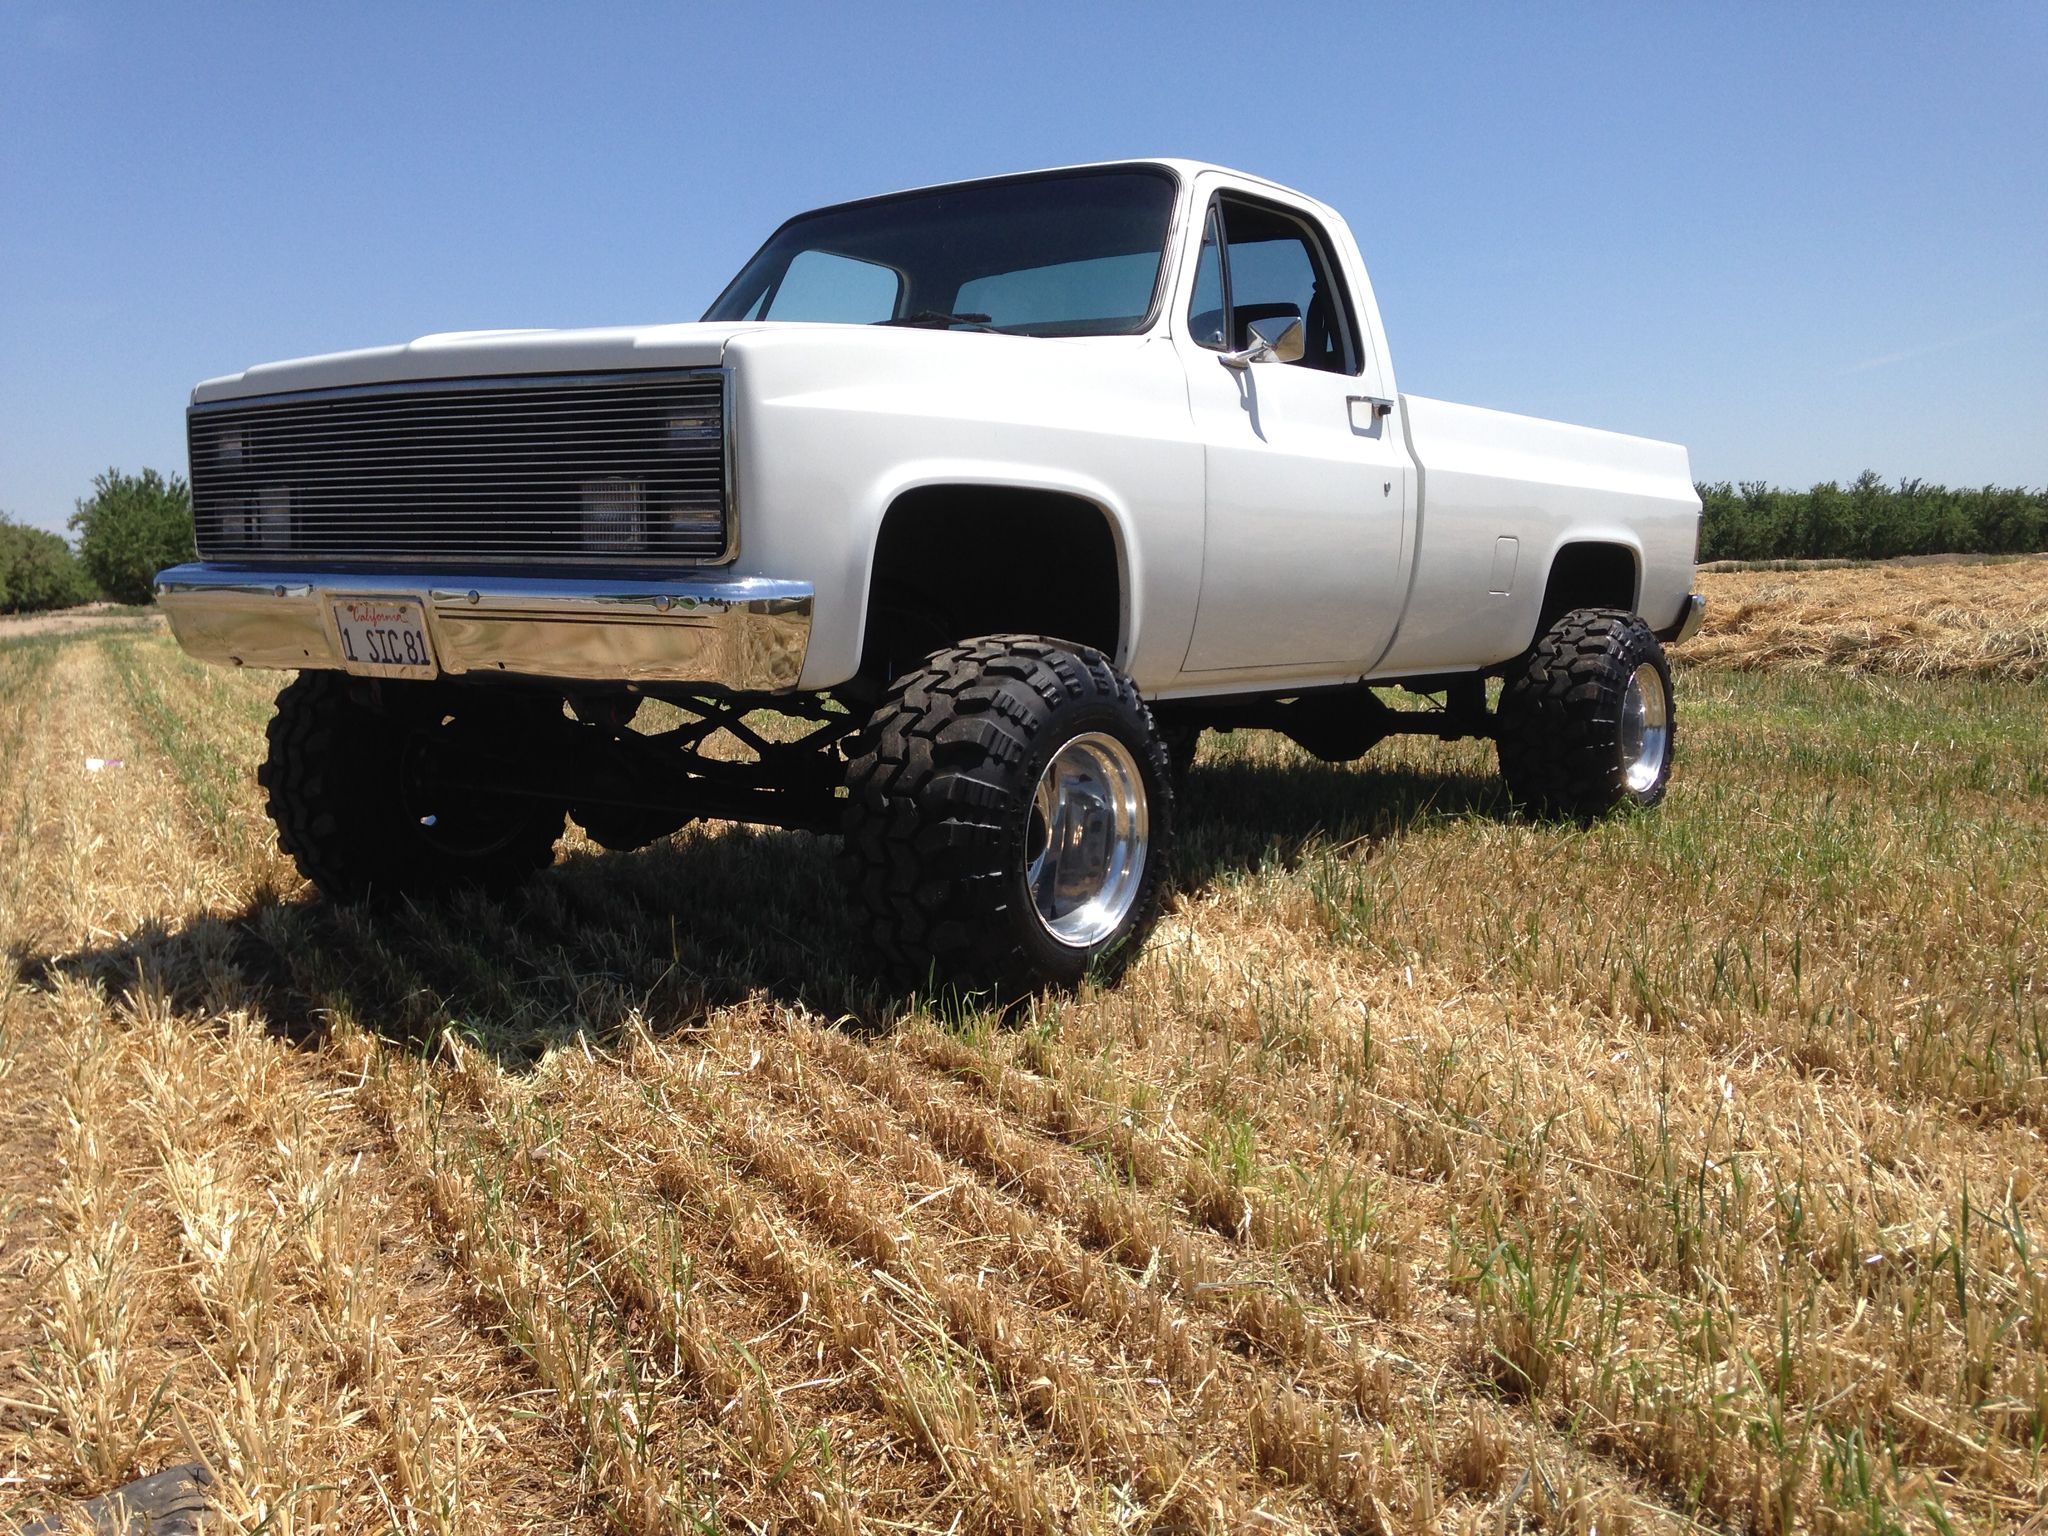 My old Chevy on weld wheels 16.5/14 with 33-15.50-16.5 Super ...